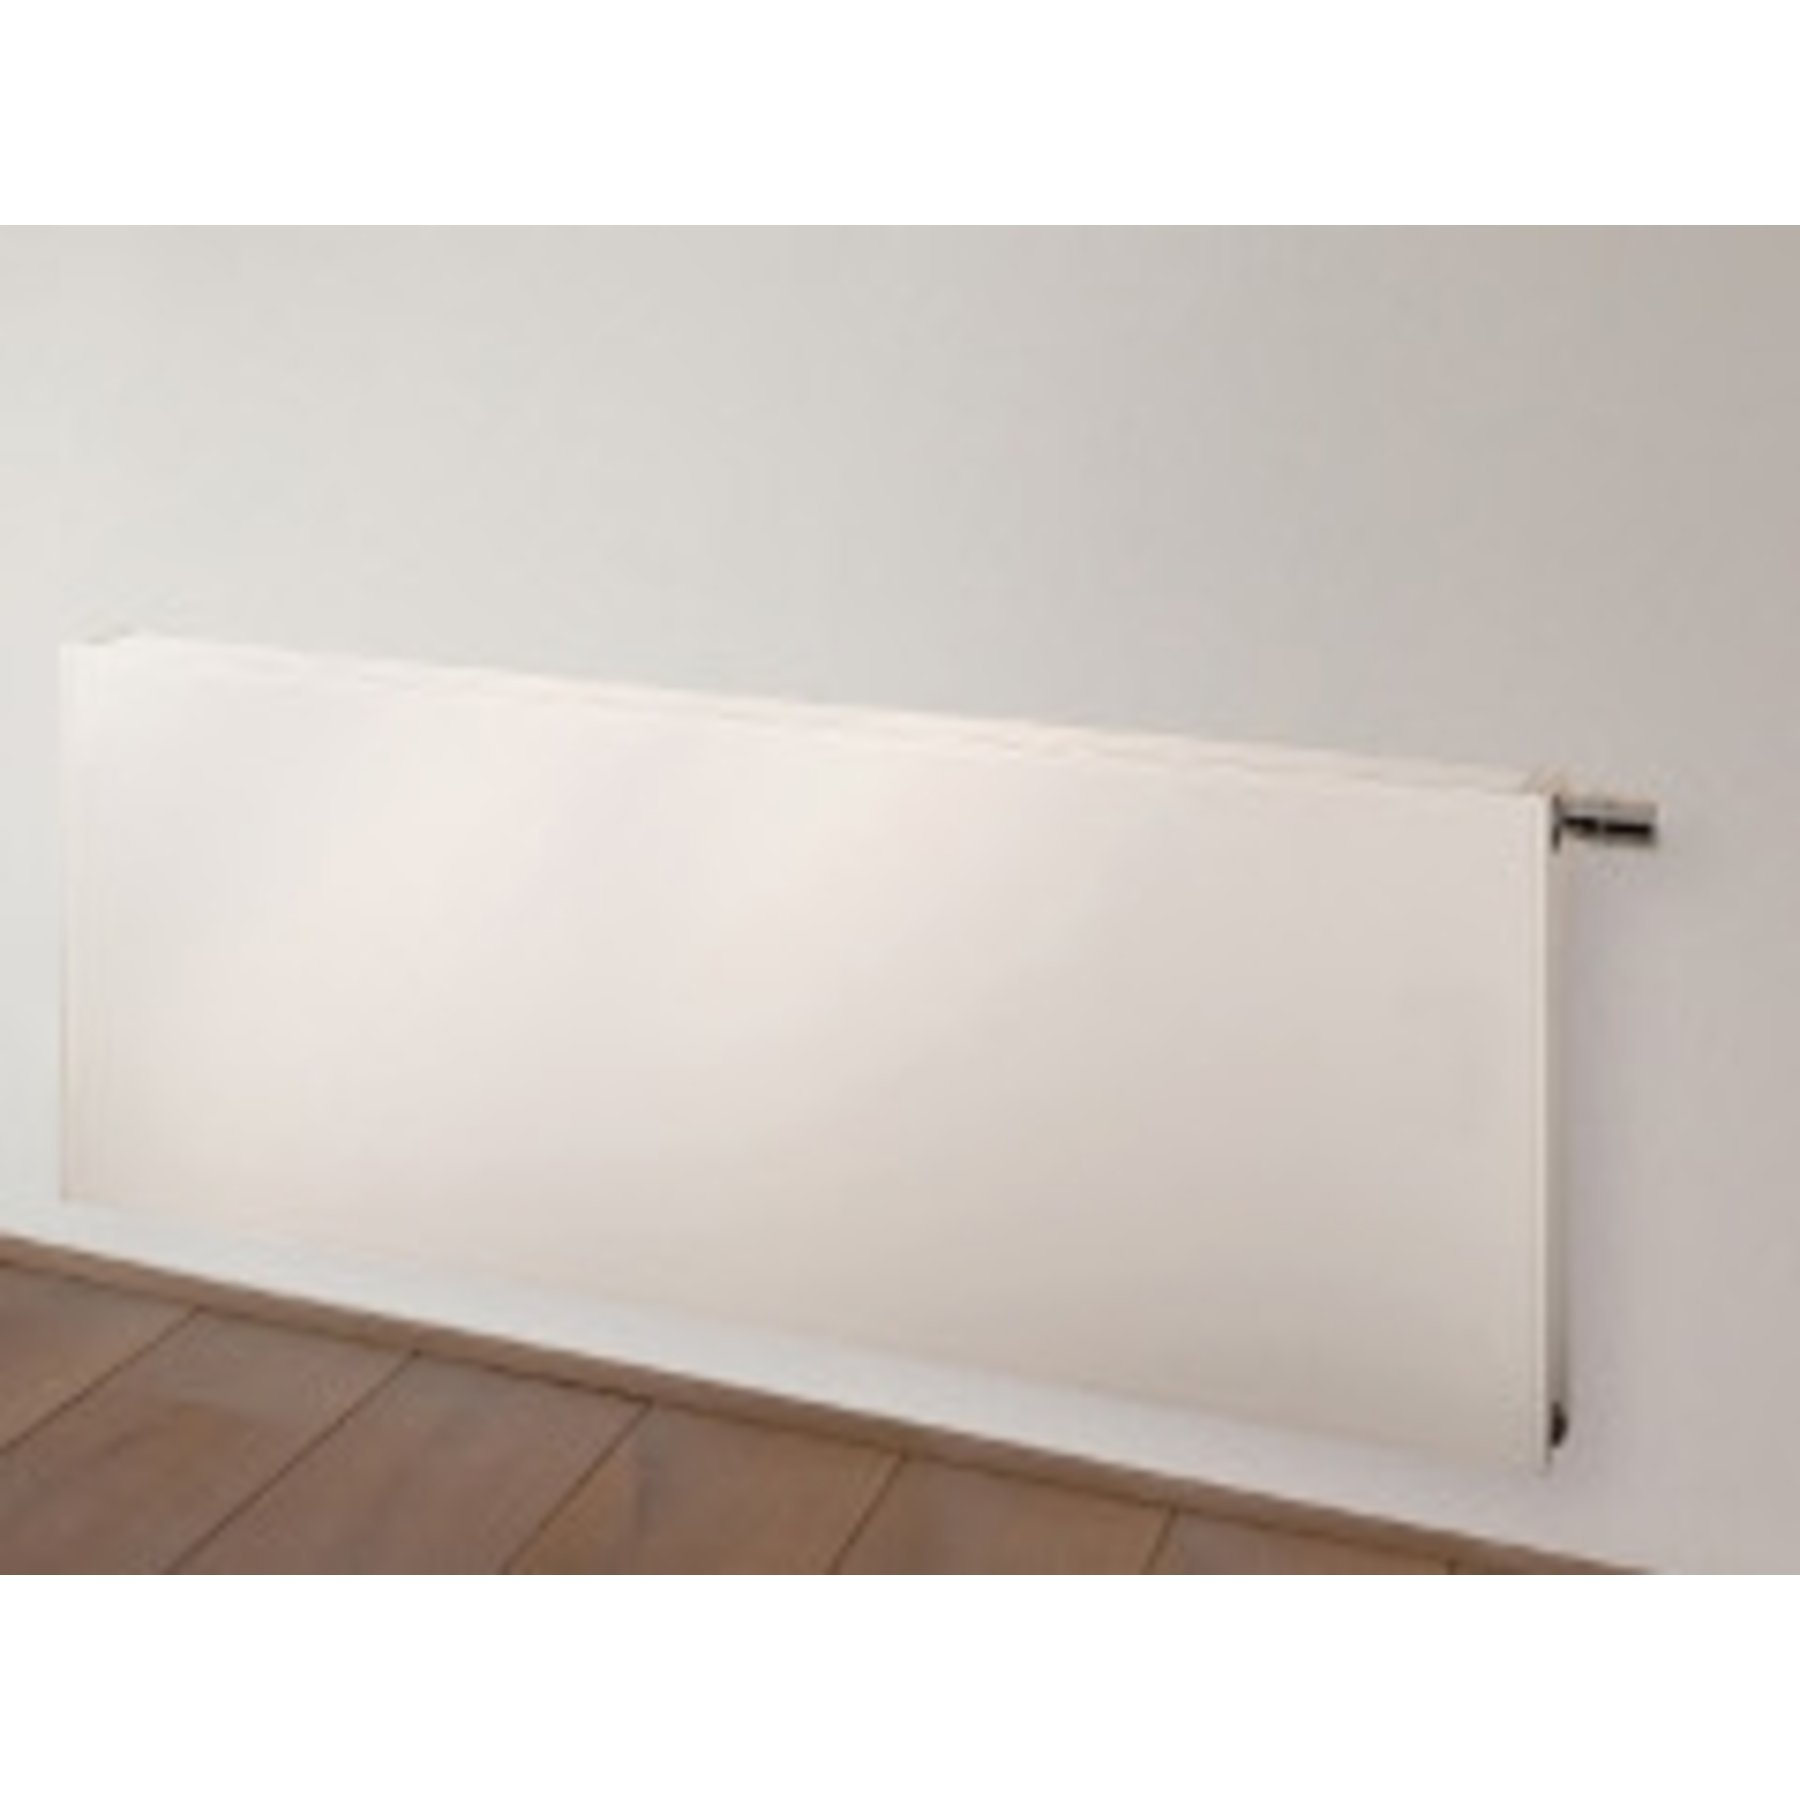 Vasco Flatline Paneelradiator type 21 600x1800mm 2304 watt vlak wit structuur (S600)